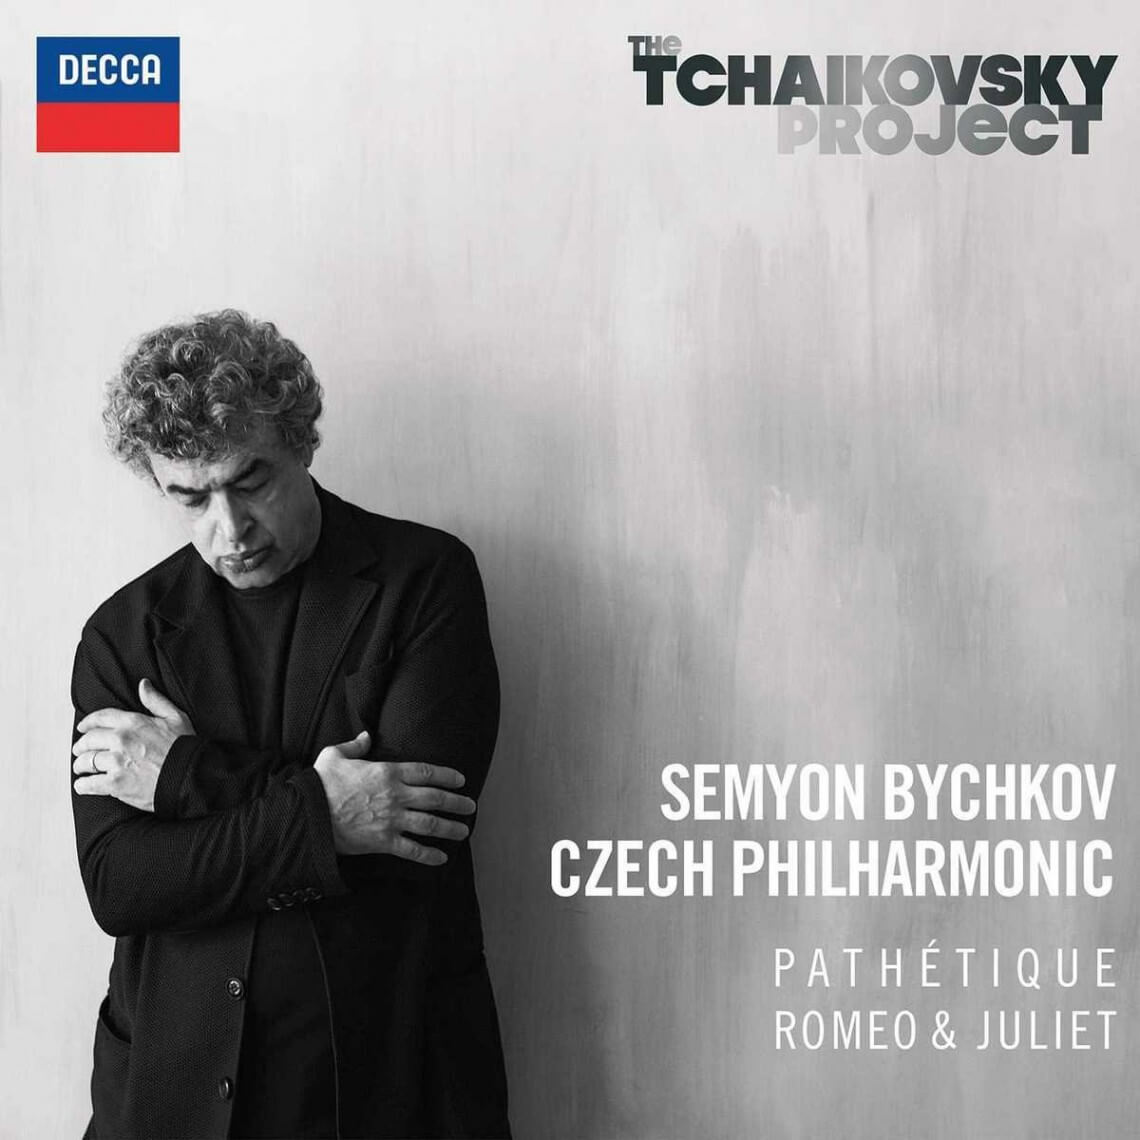 The Tchaikovsky Project: Pathetique, Romeo & Juliet